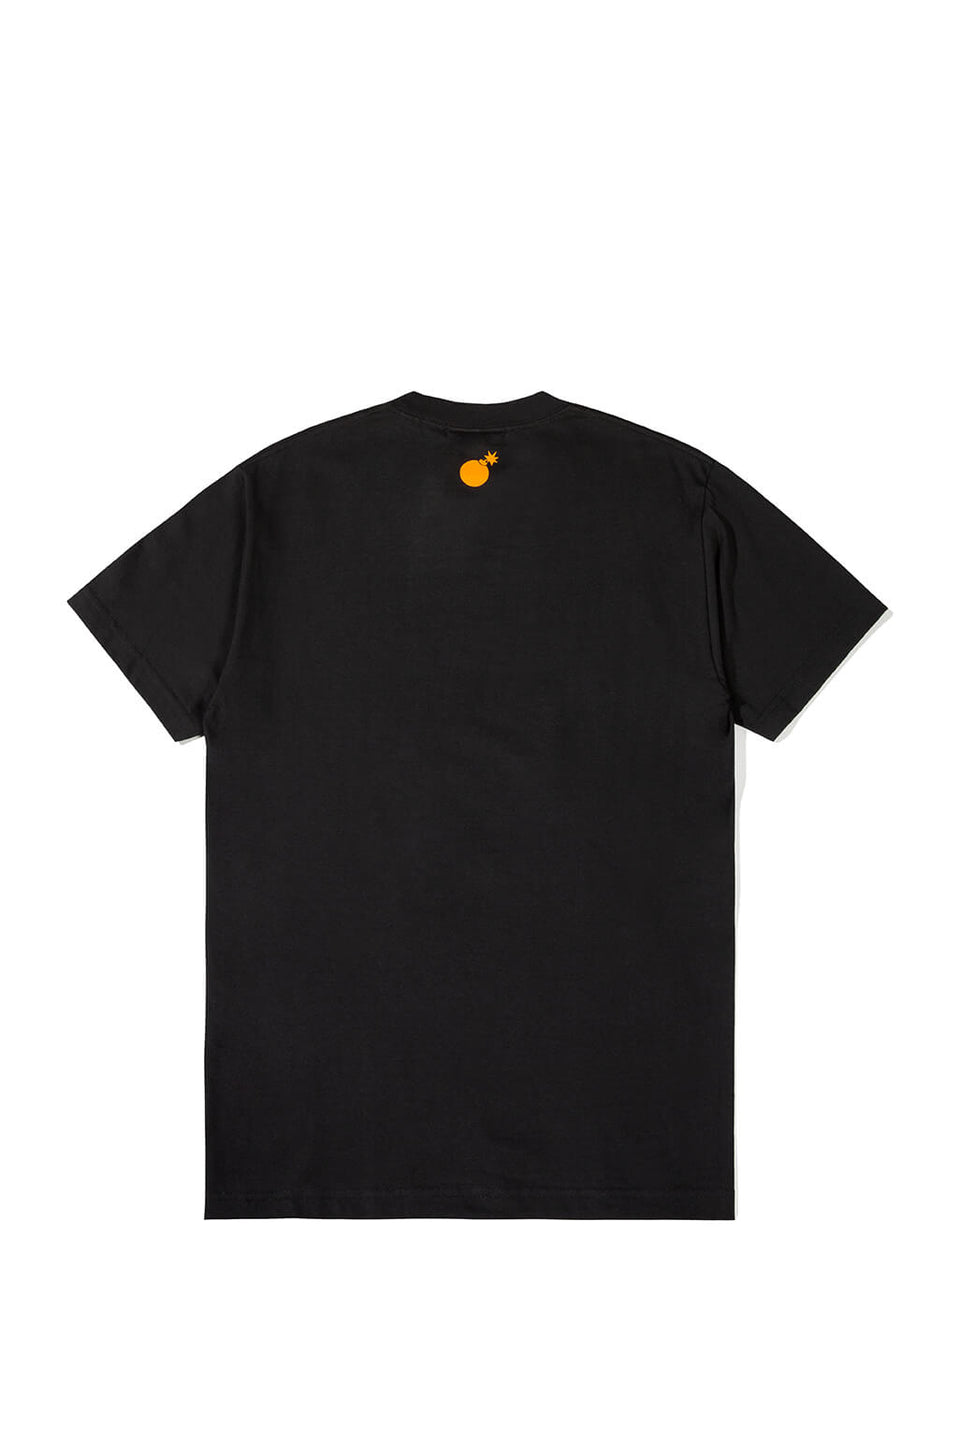 The Hundreds Rent T-Shirt Black